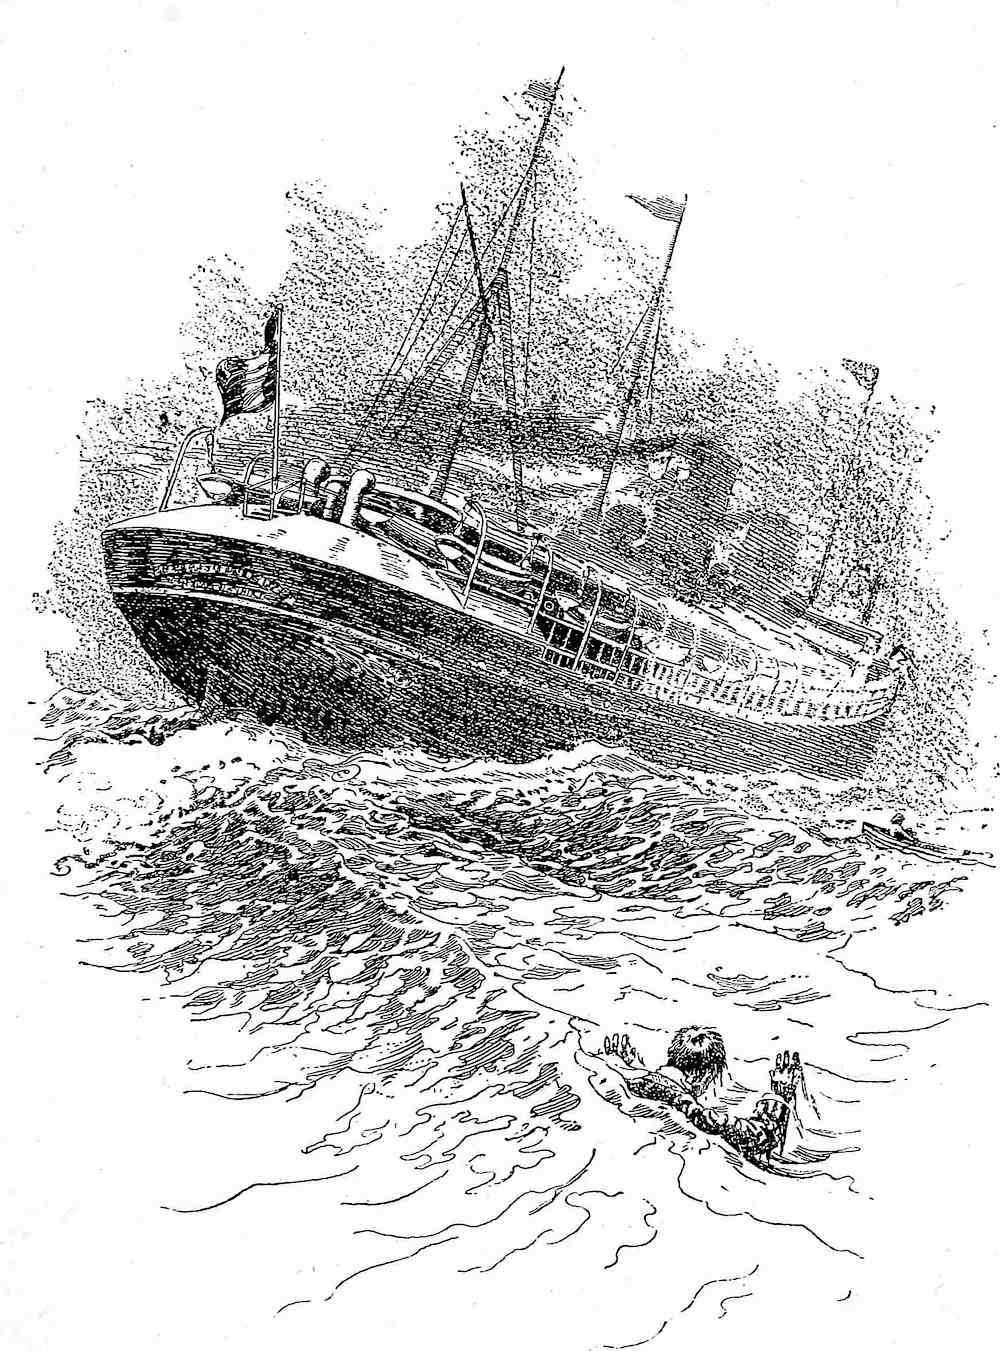 a I.W. Taber illustration 1897, a man overboard from a ship